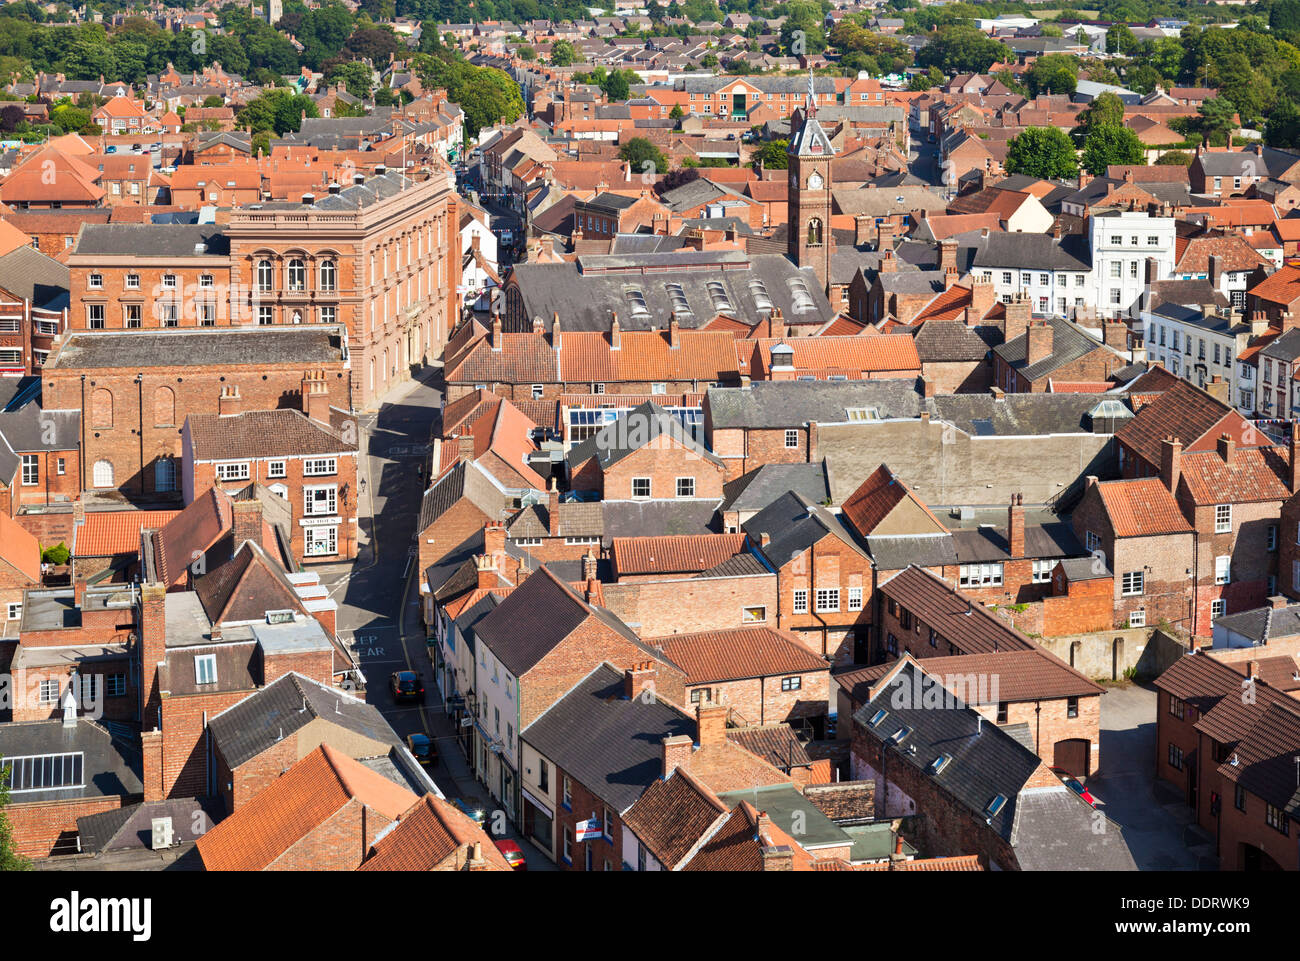 Aerial view of the houses and streets of the small town of Louth Lincolnshire England UK GB EU Europe - Stock Image